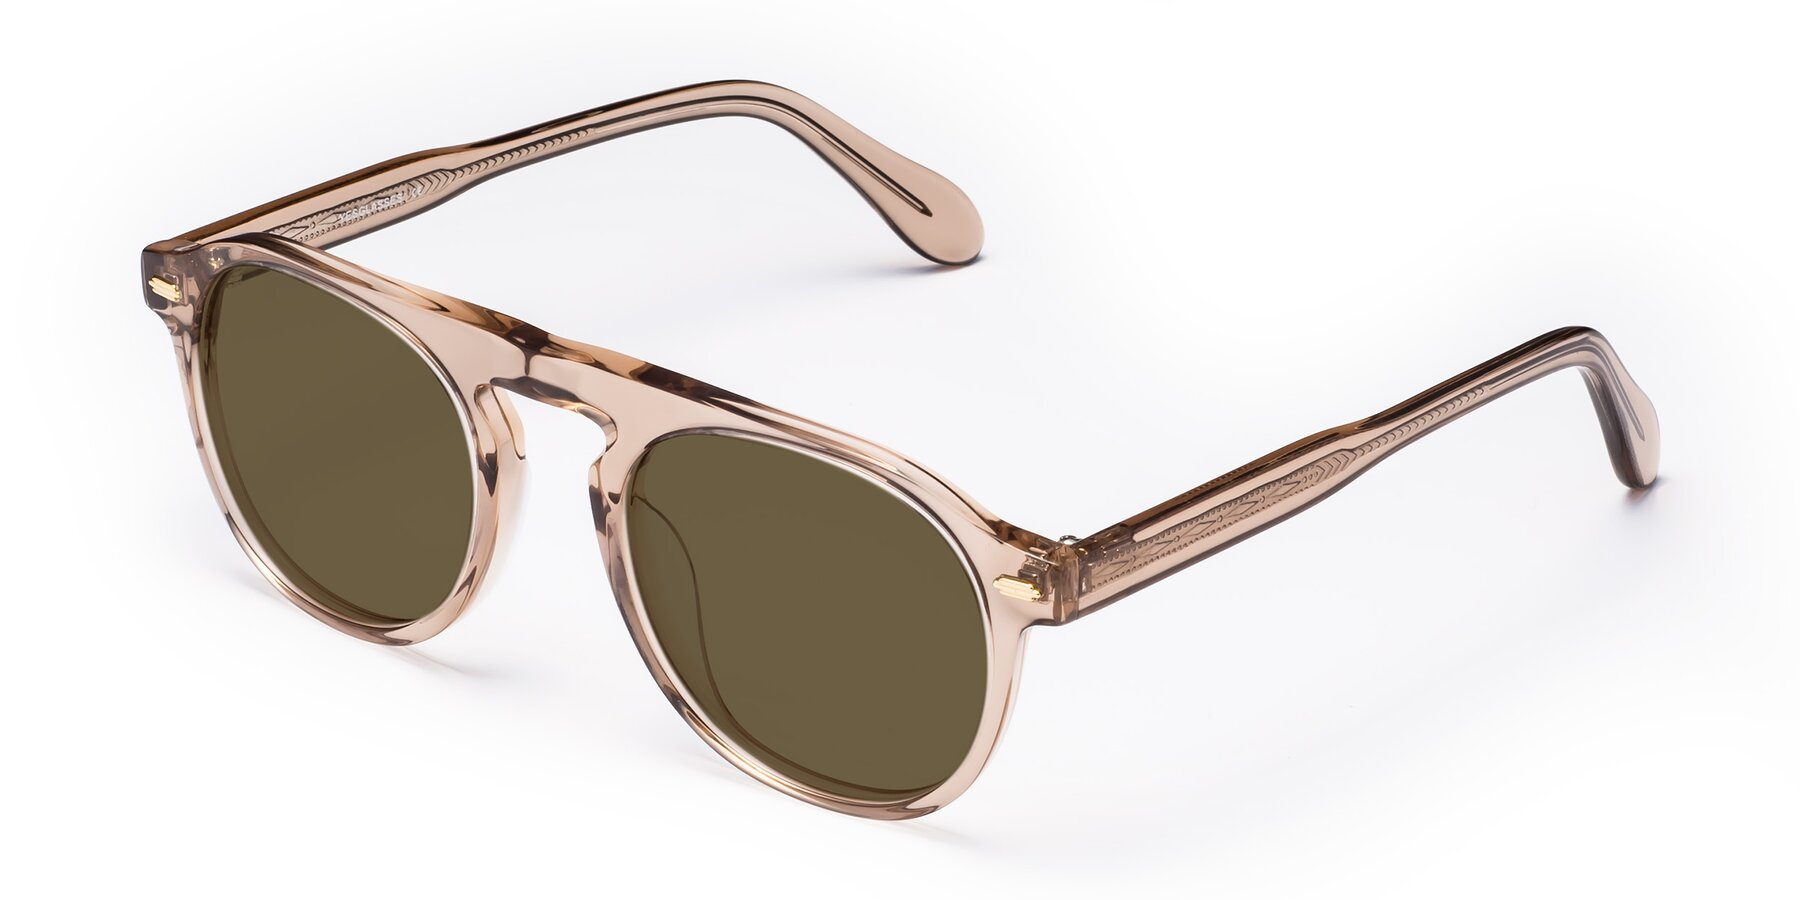 Angle of Mufasa in light Brown with Brown Polarized Lenses